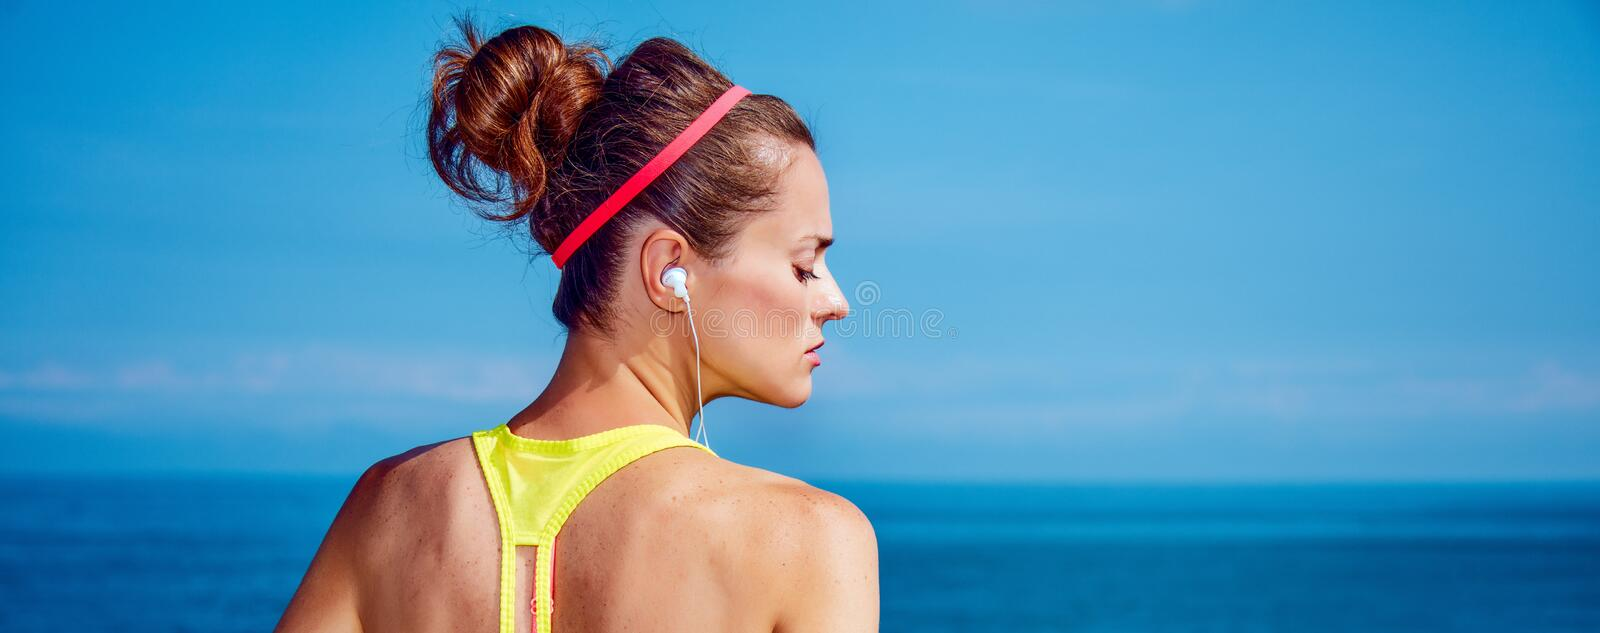 Relaxed fitness woman listening to music at embankment stock images